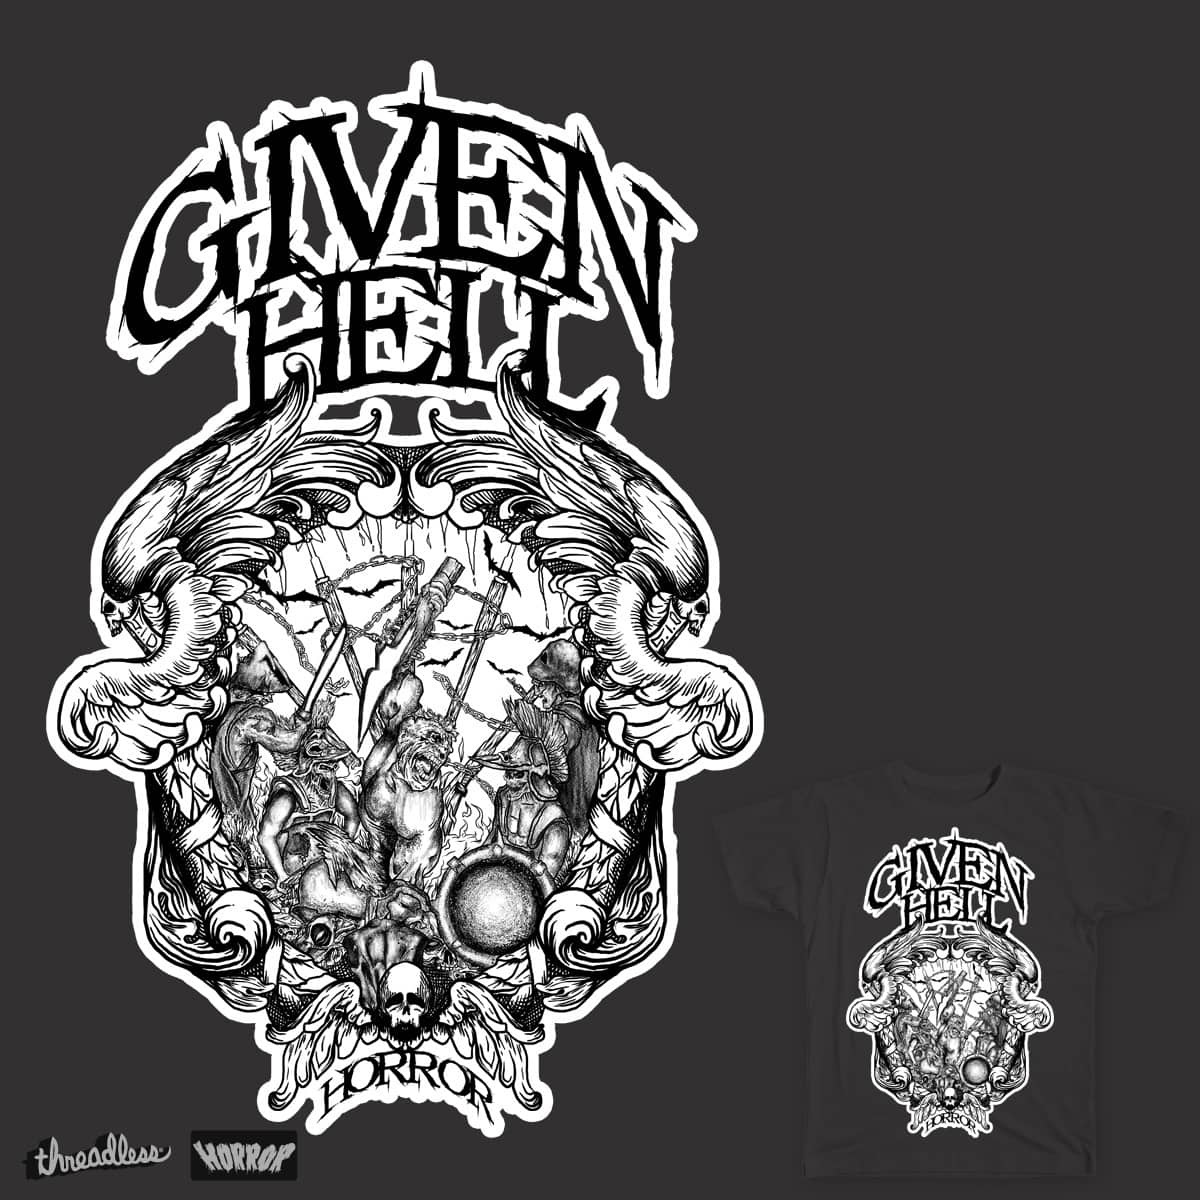 given hell by gupikus on Threadless